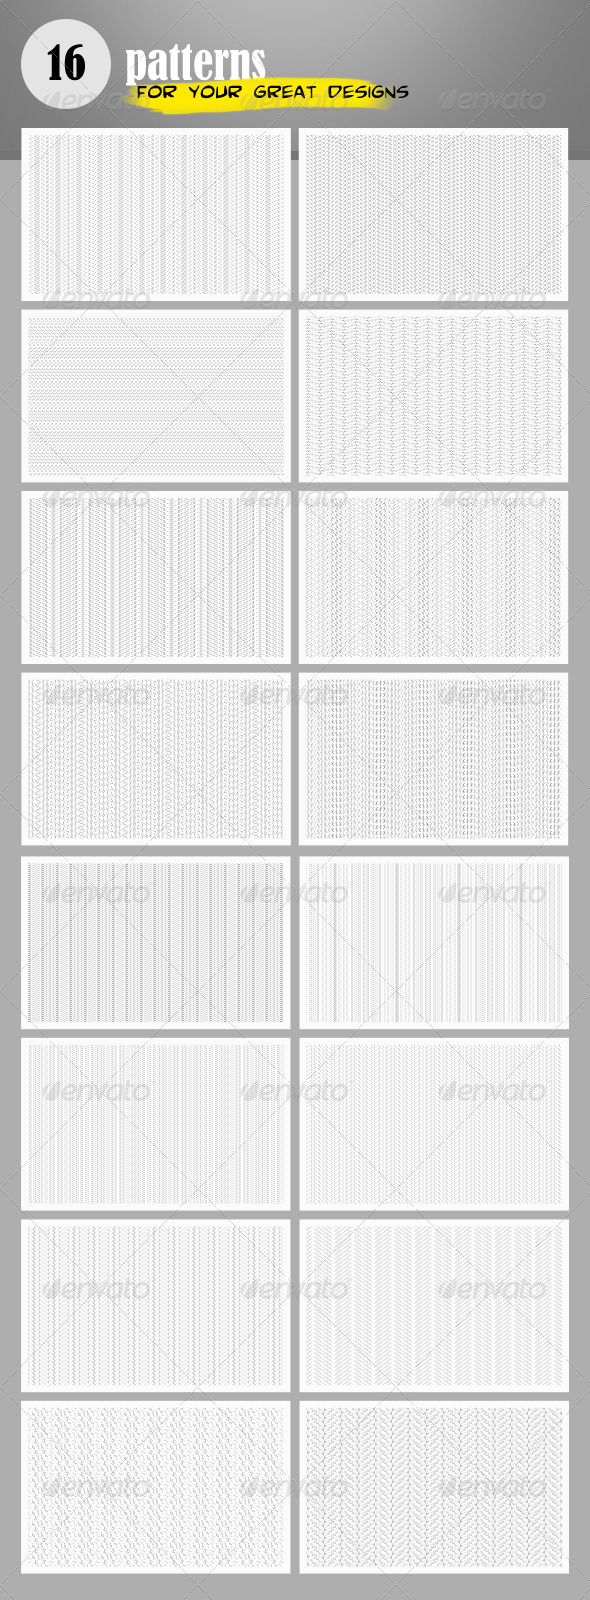 GraphicRiver 16 Clean Patterns 4052452